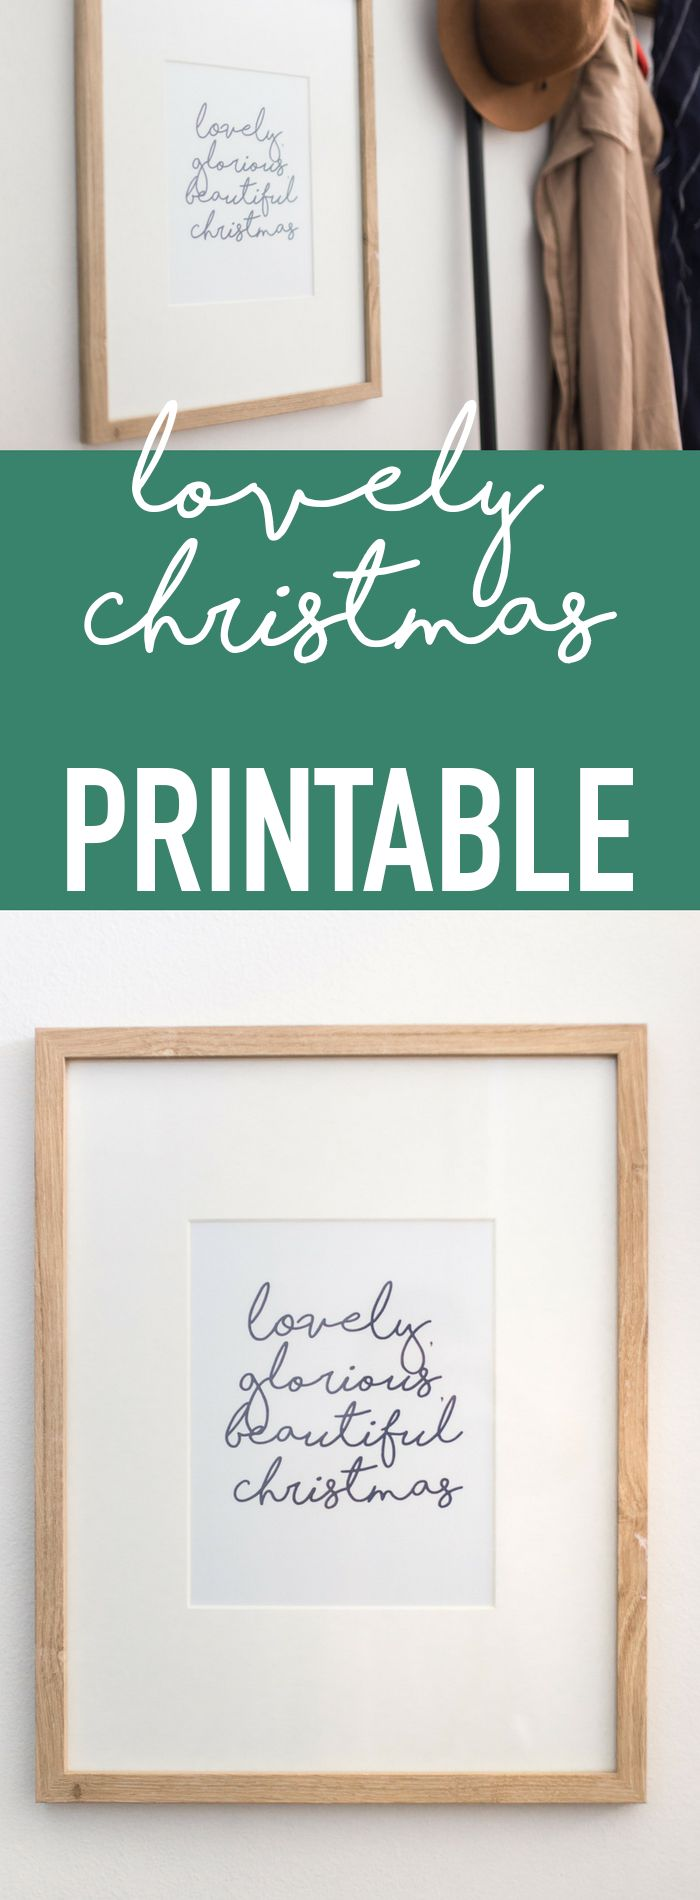 Lovely, glorious, beautiful Christmas - free Christmas Printable - holiday printables and more decorating ideas